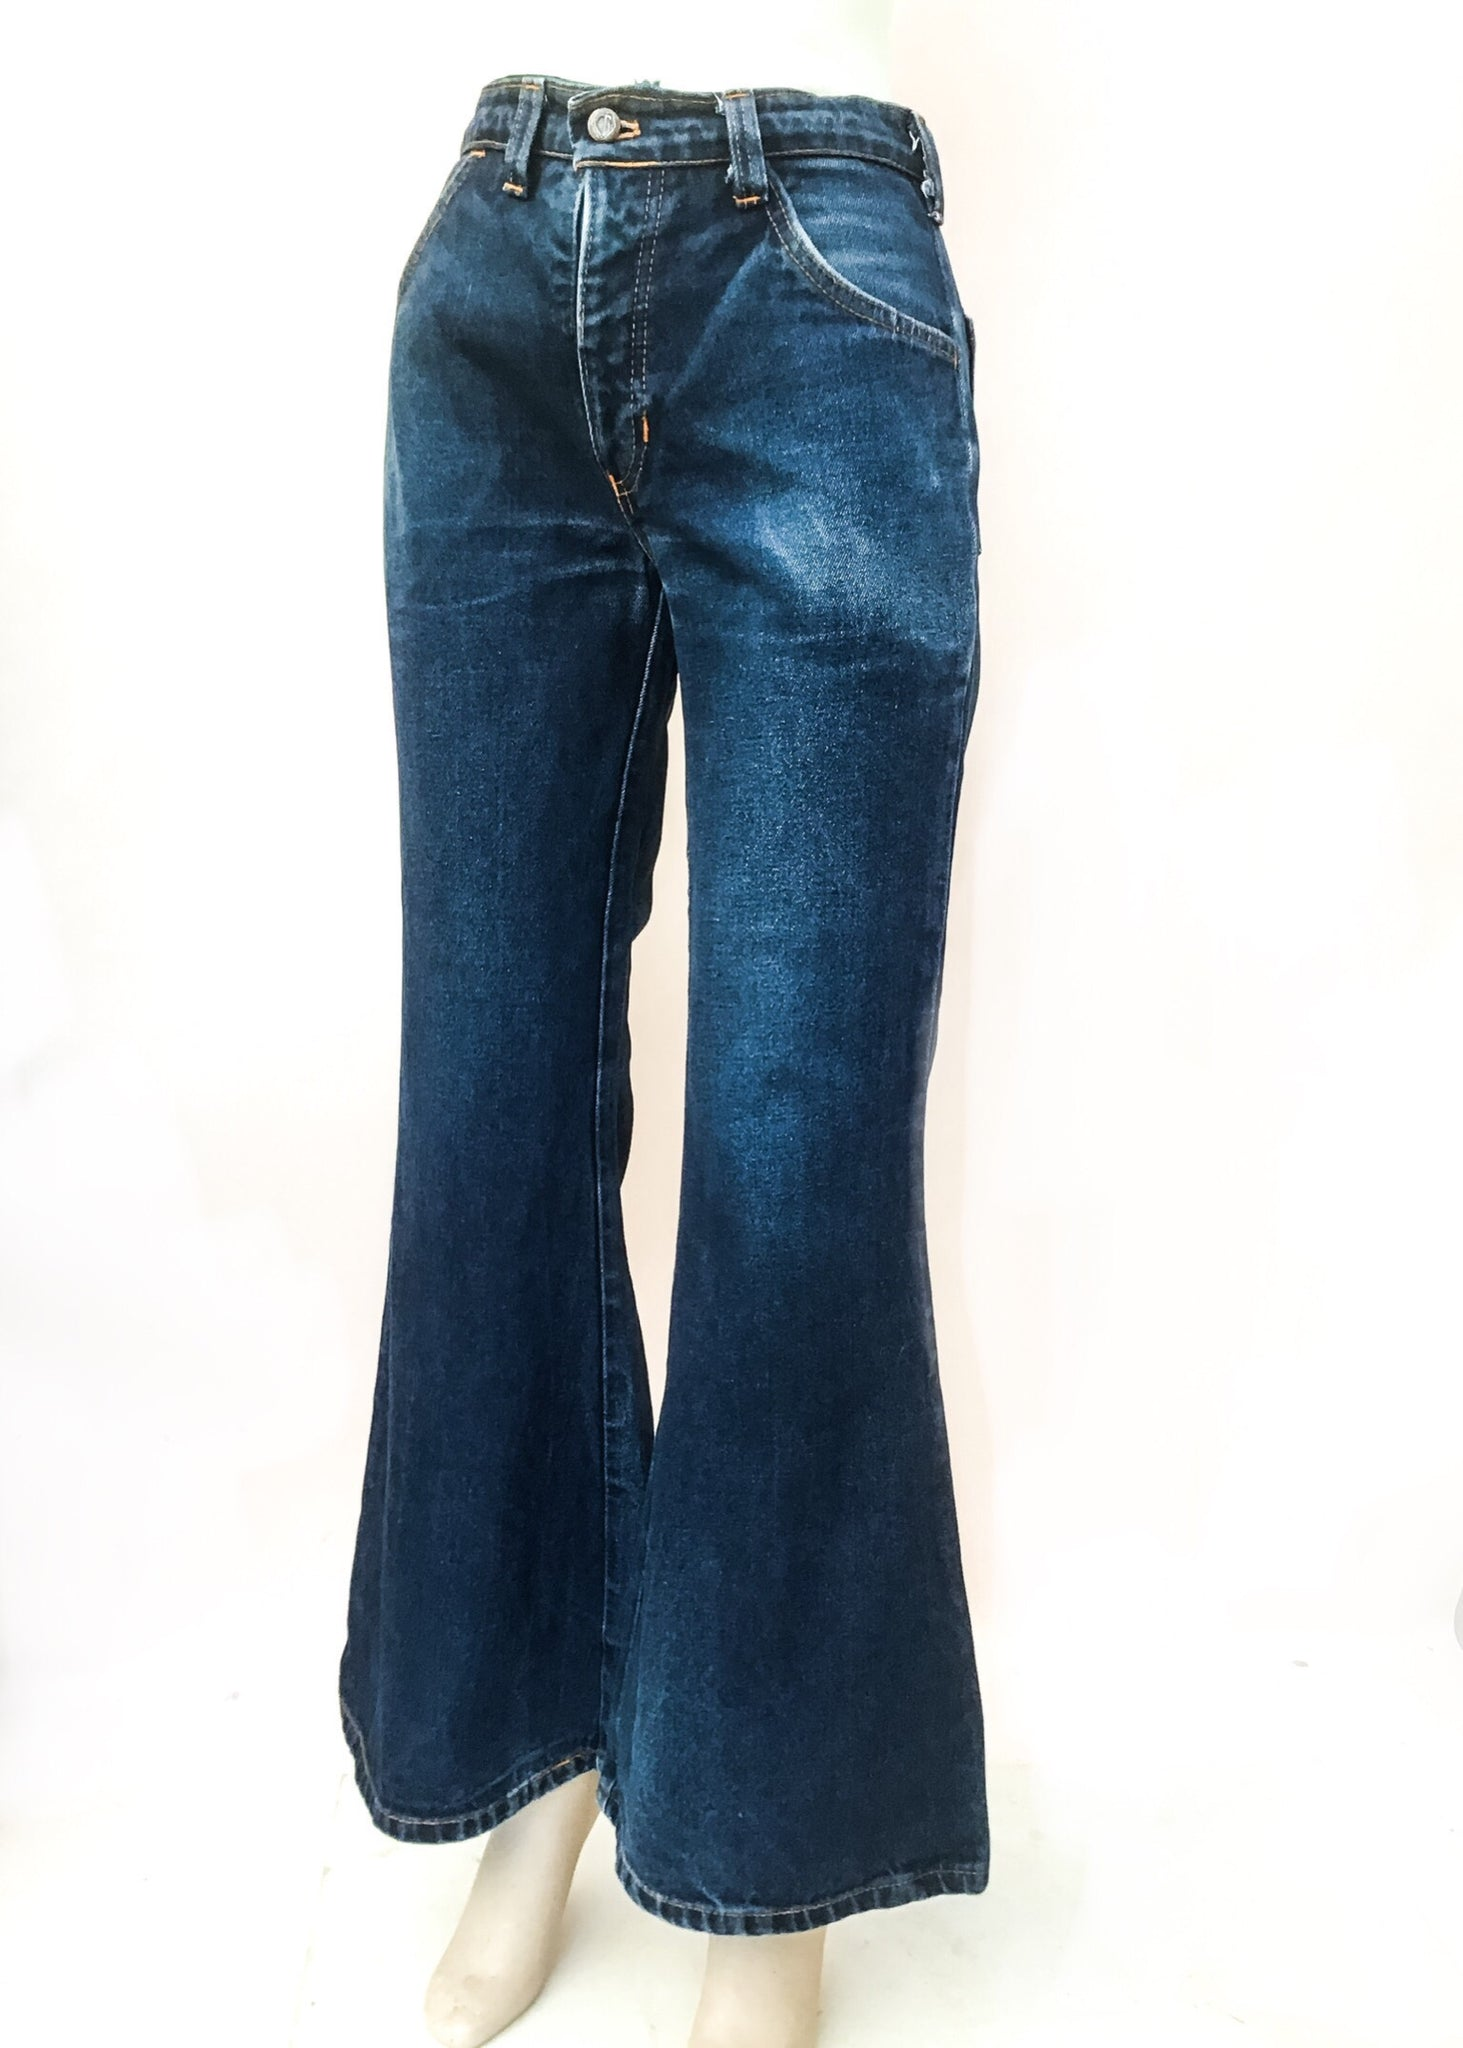 Vintage hippie bell bottom flared jeans 30 waist